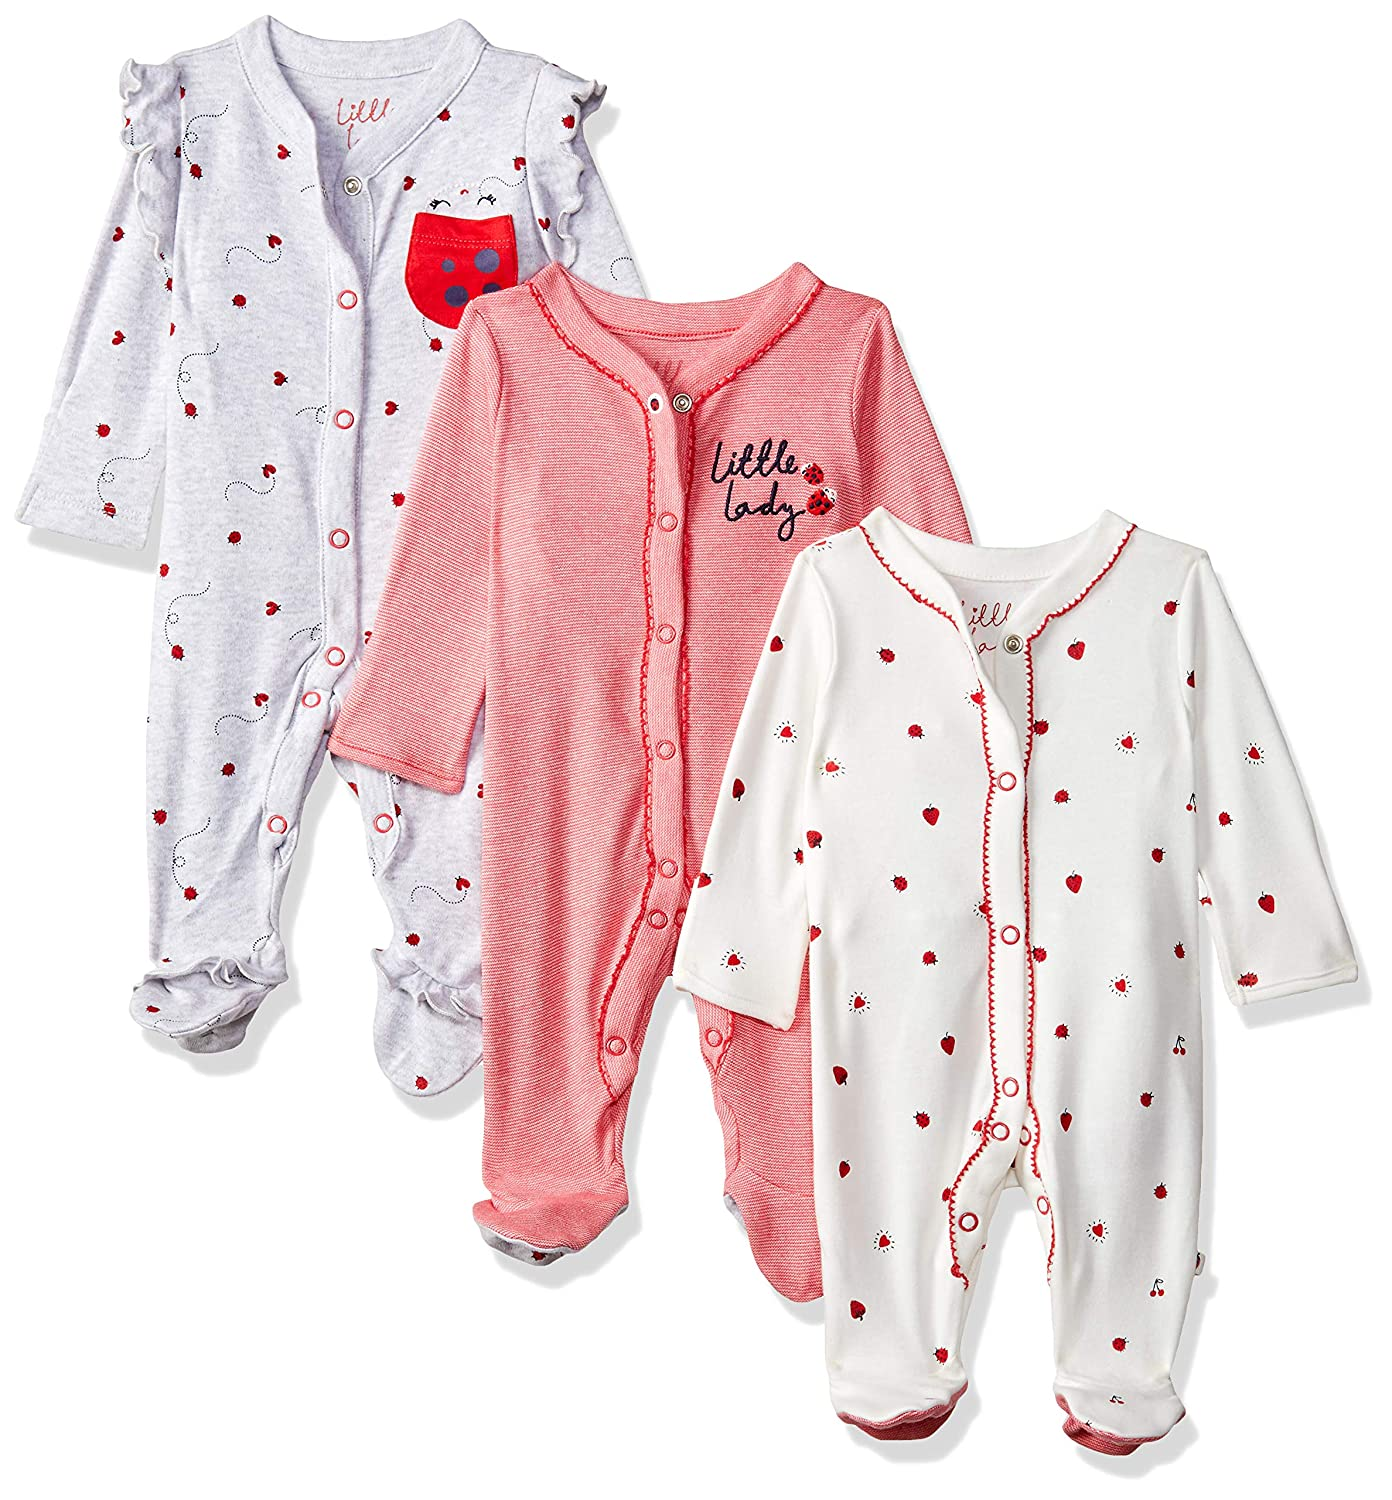 Care Baby Girls Sleepsuit 2-Pack